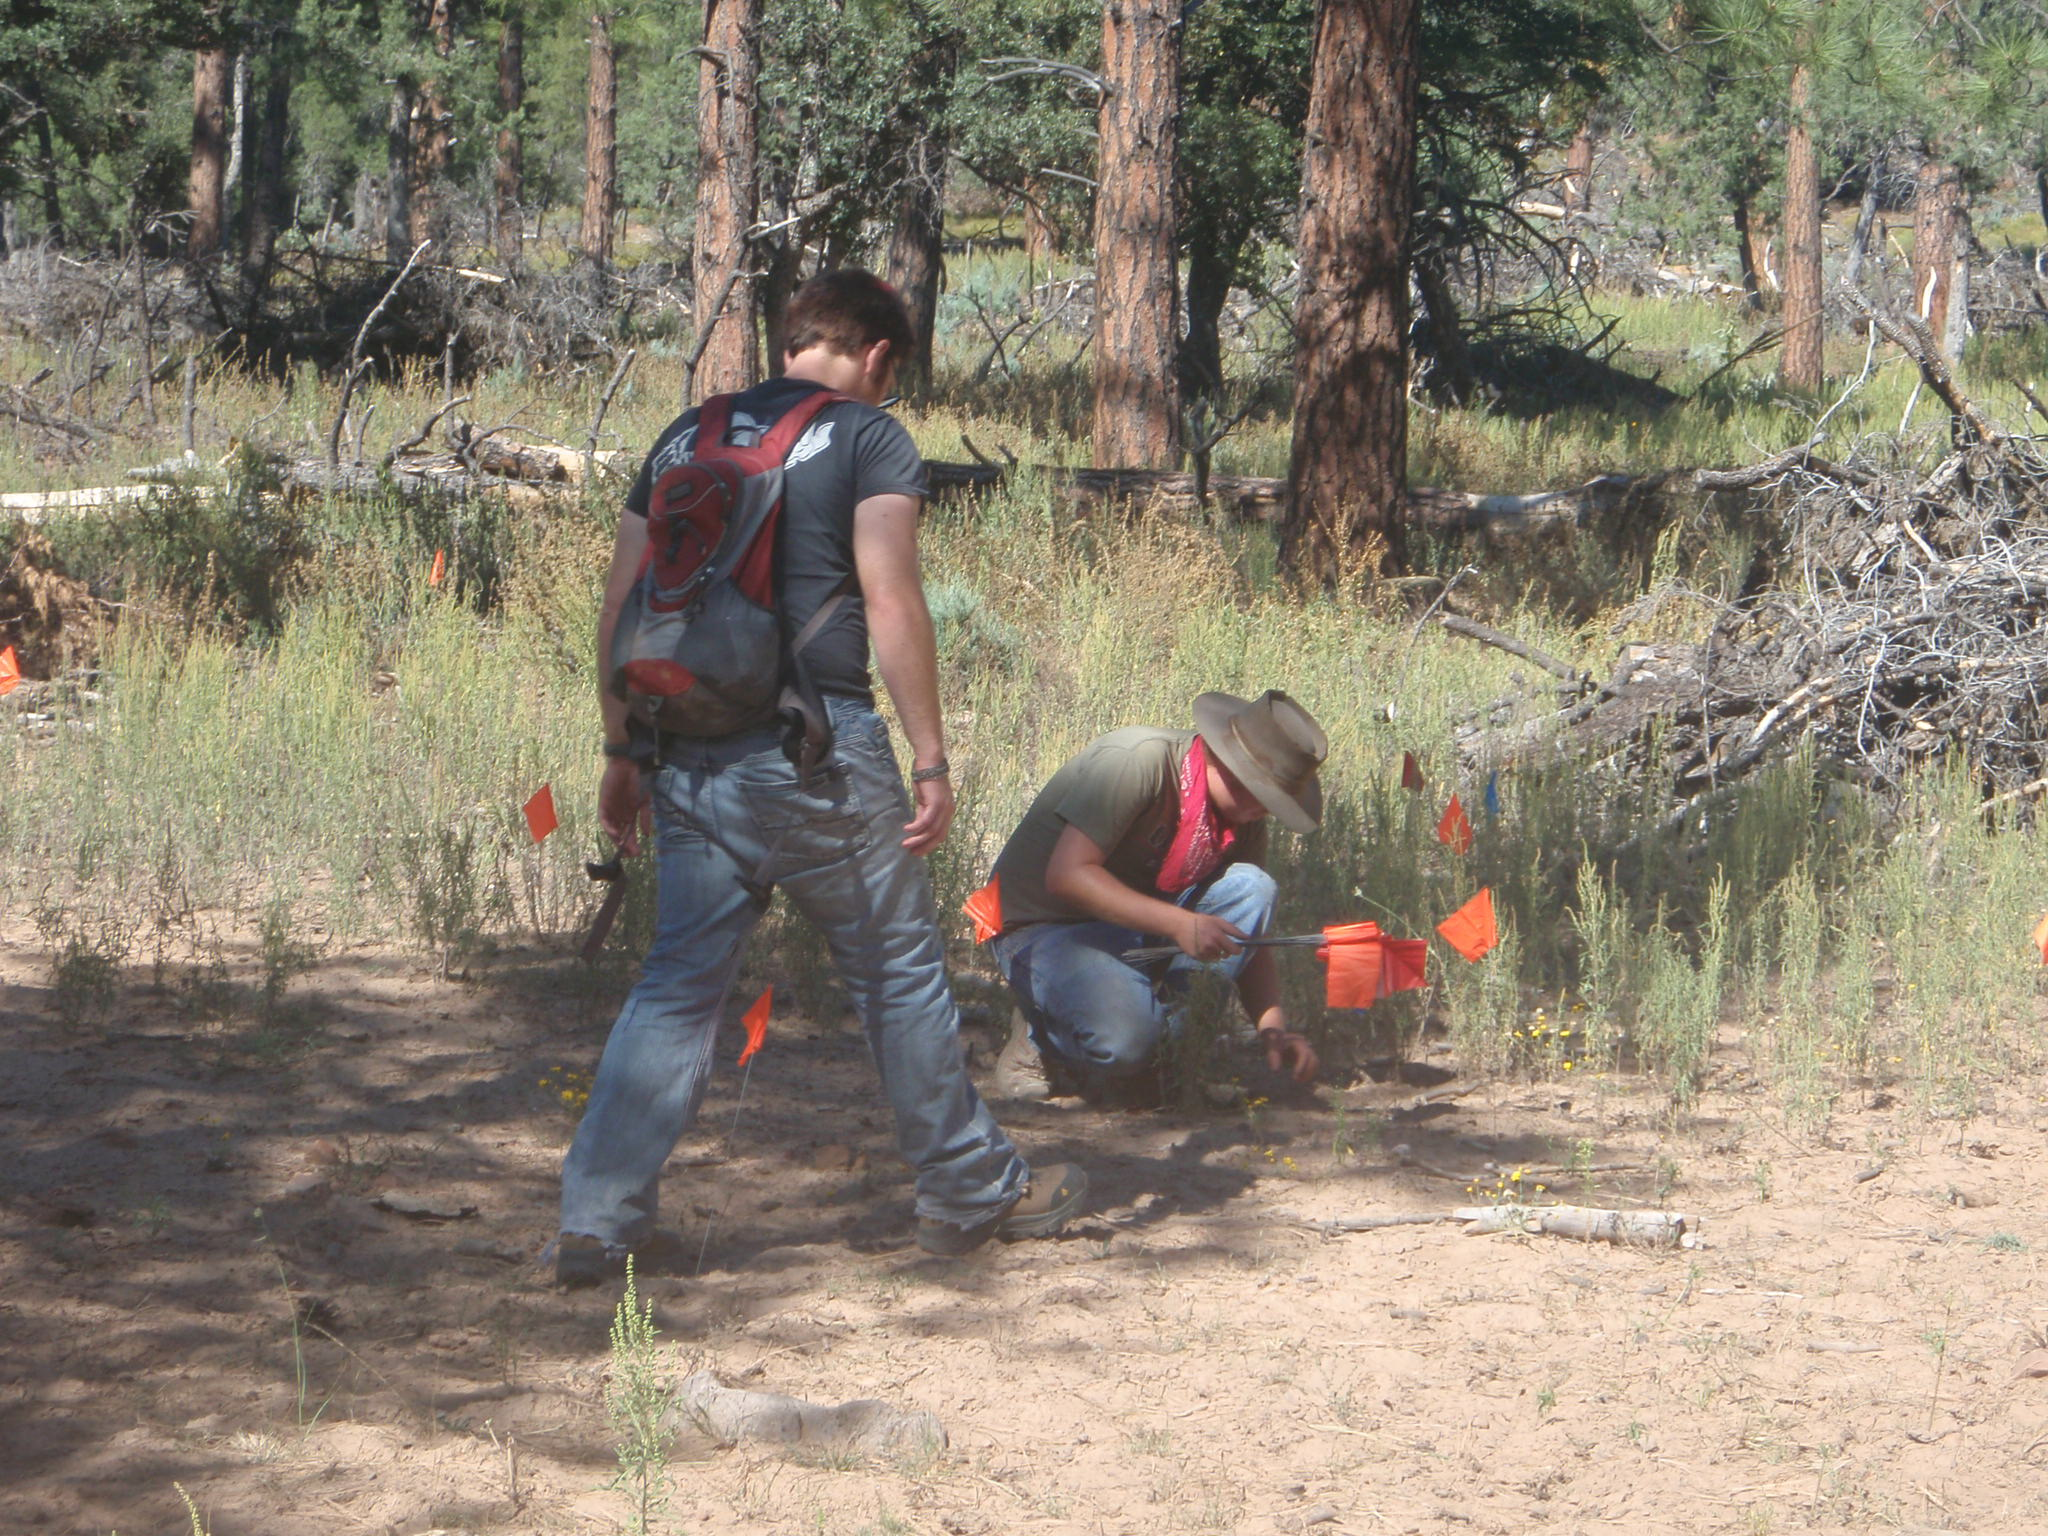 Archaeologists finding a prehistoric site in the tonto forest of